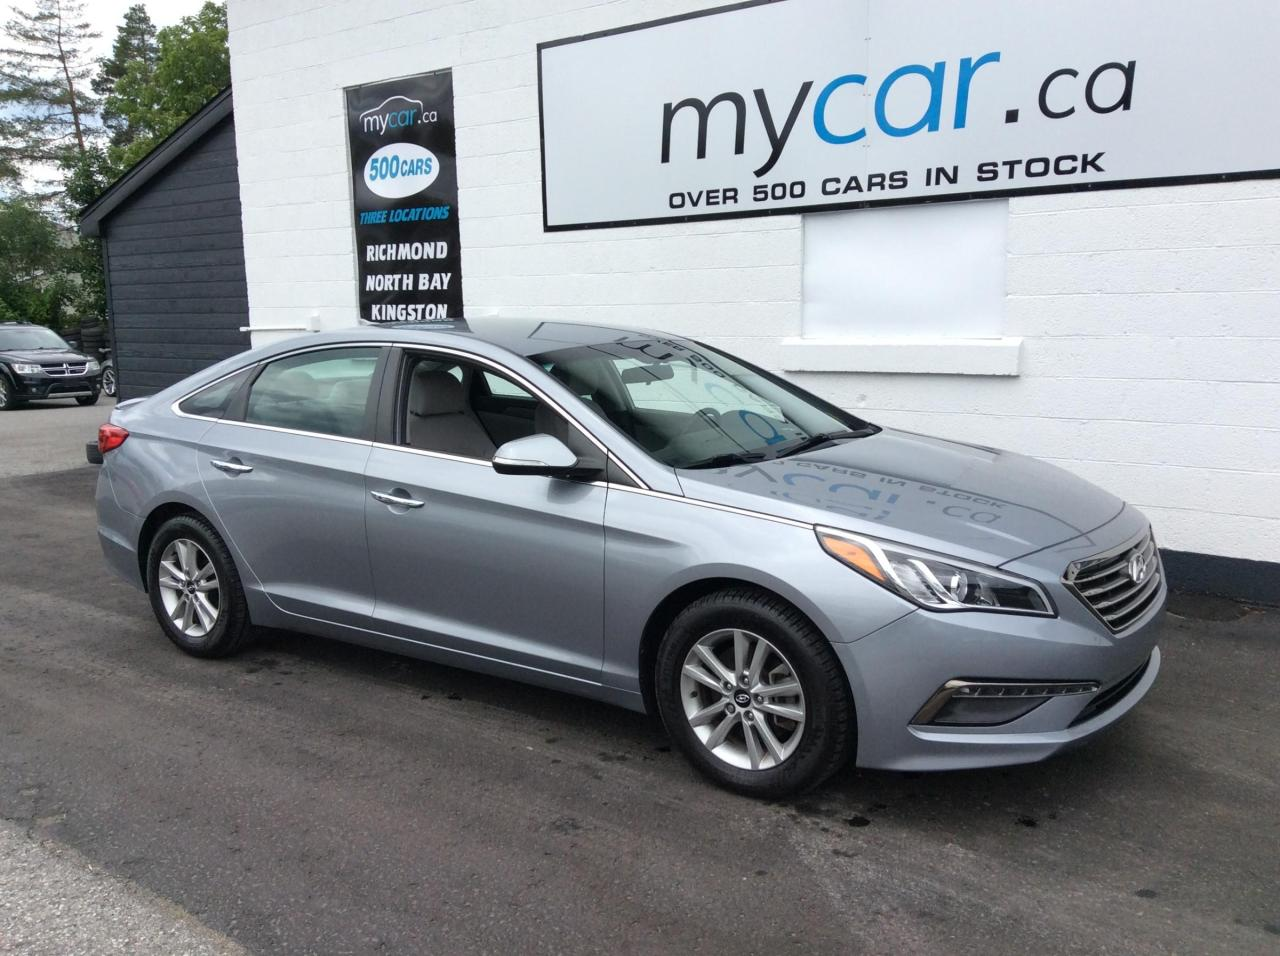 used 2015 hyundai sonata gls heated pwr seat, alloys, backup cam for sale in north bay, ontario carpages.ca